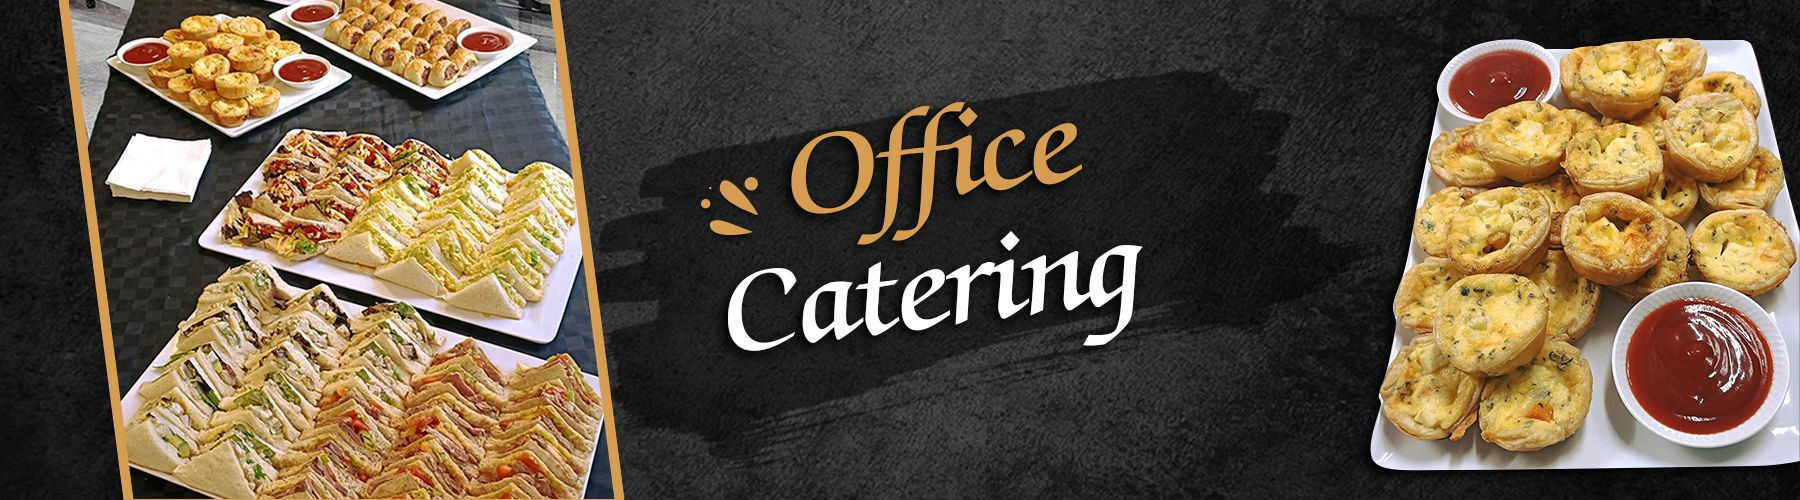 Featured Images - Office Catering